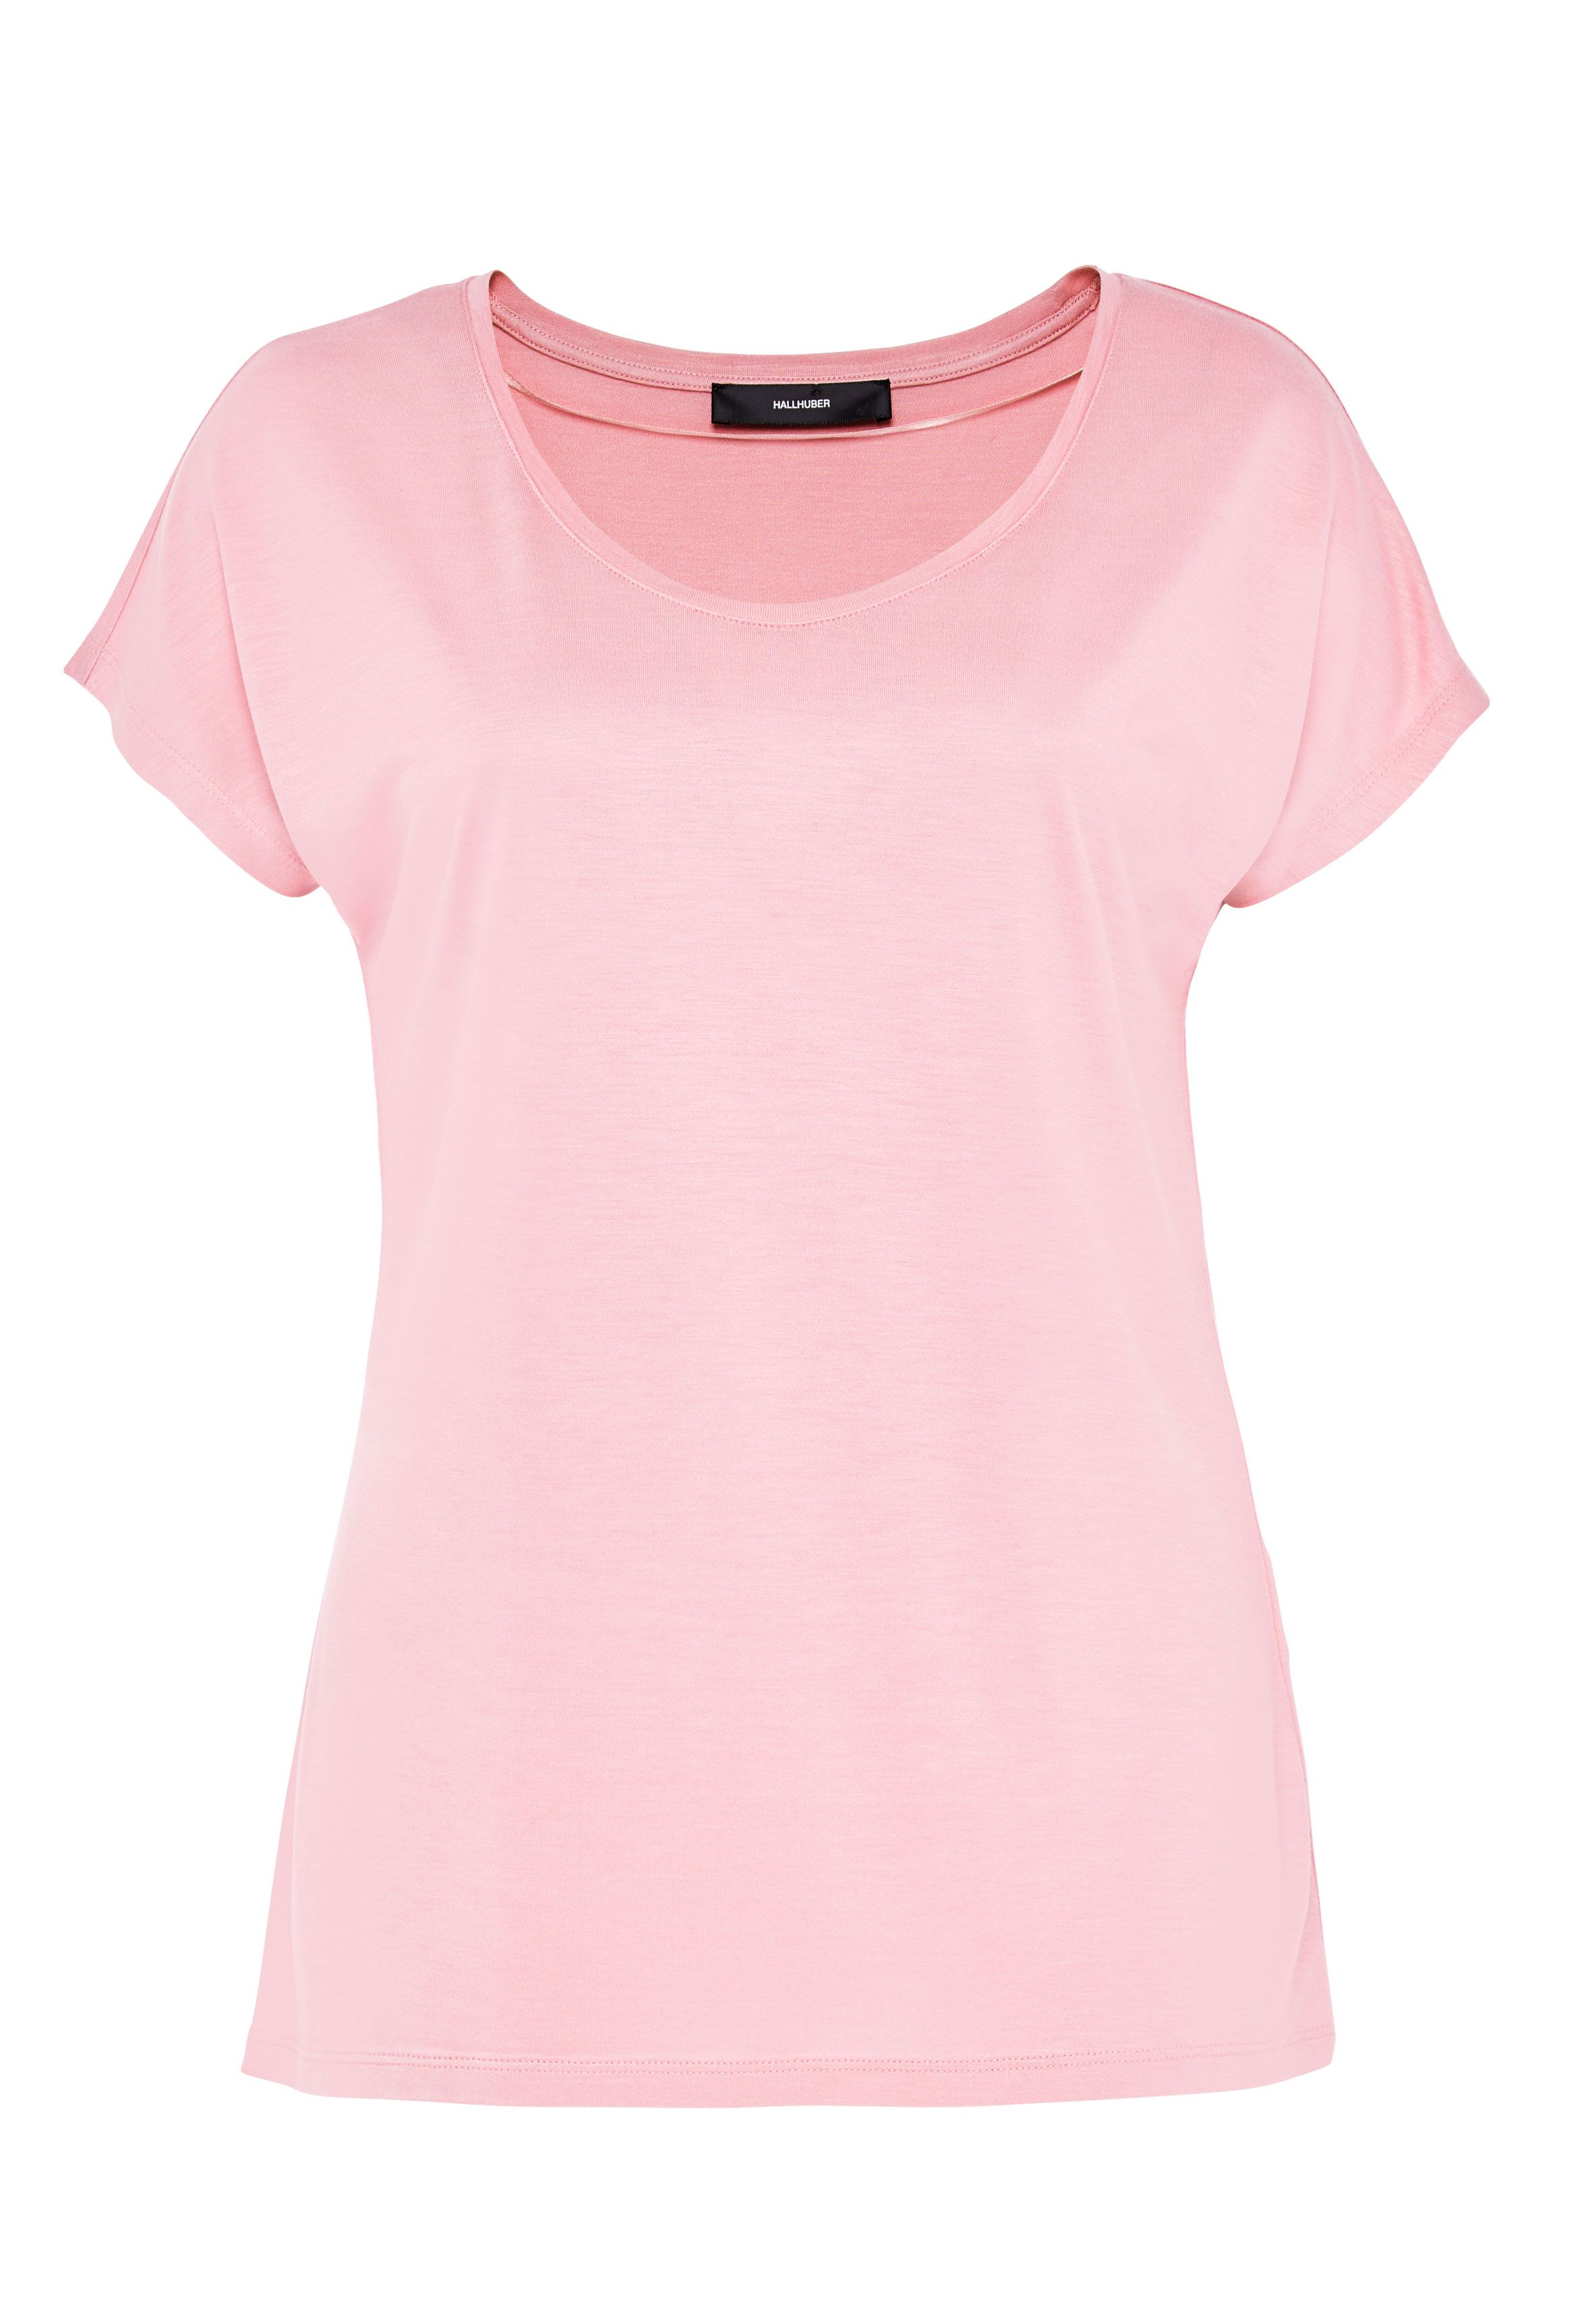 Hallhuber Basic Tee With Plunging Neckline, Pink